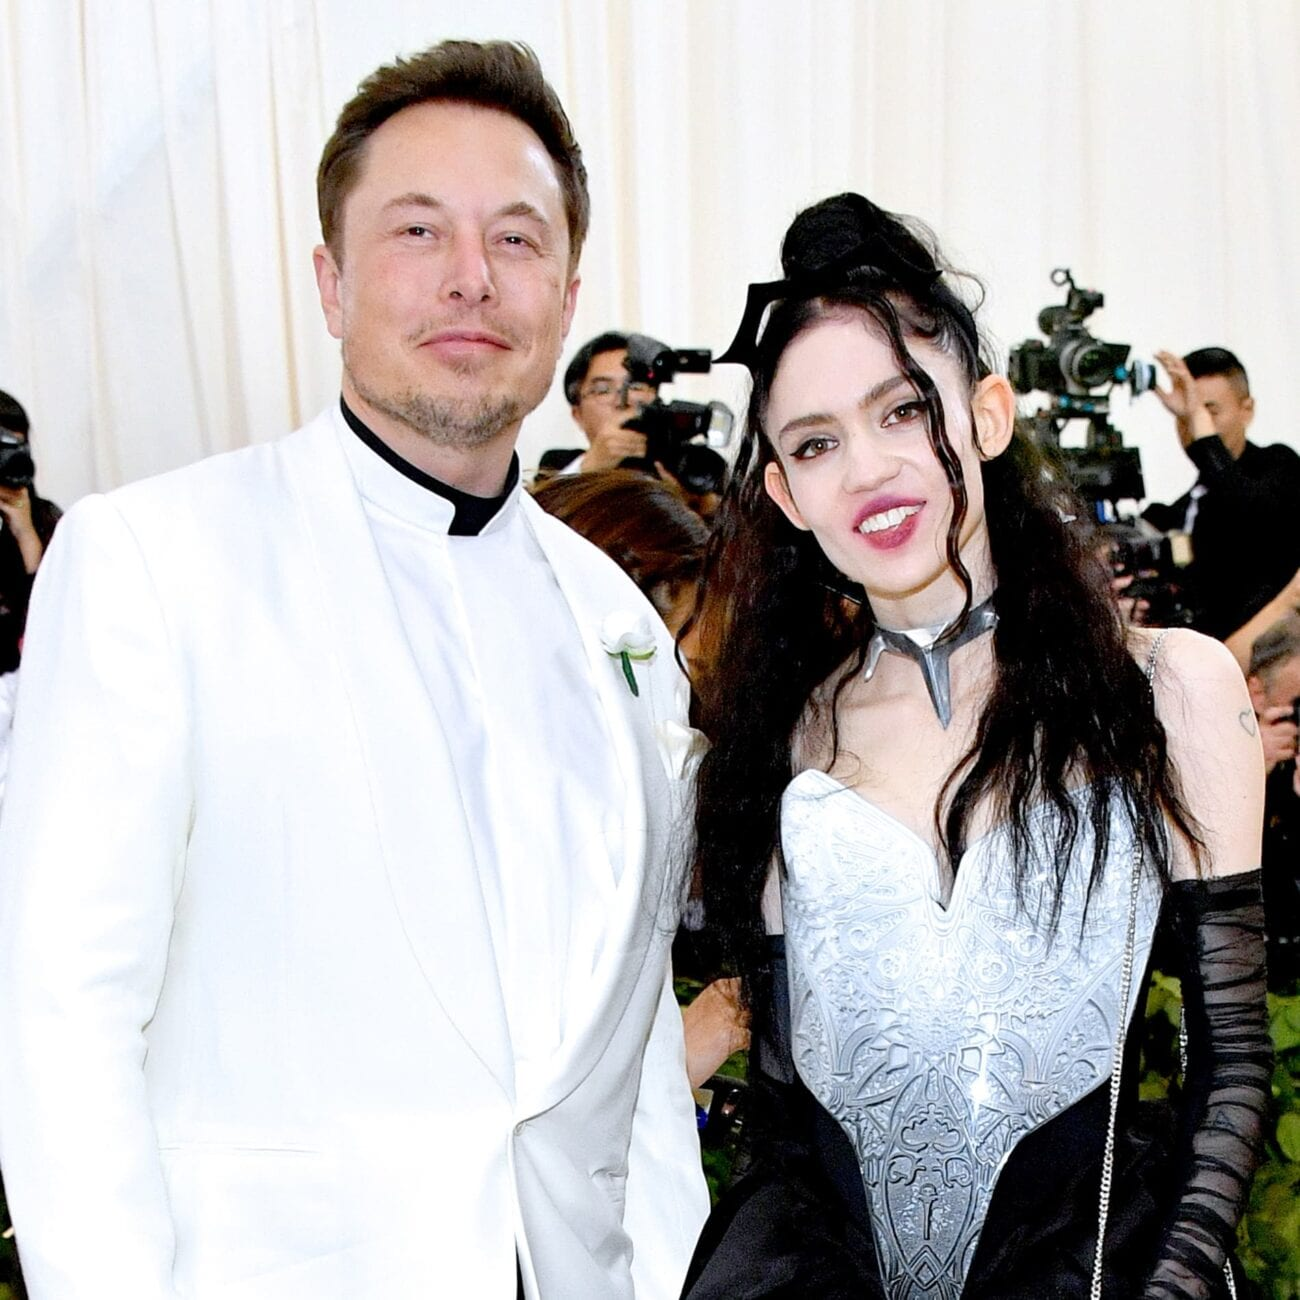 Grimes just responded to some of her critics online. Discover what the singer had to say about Elon Musk funding her music career.